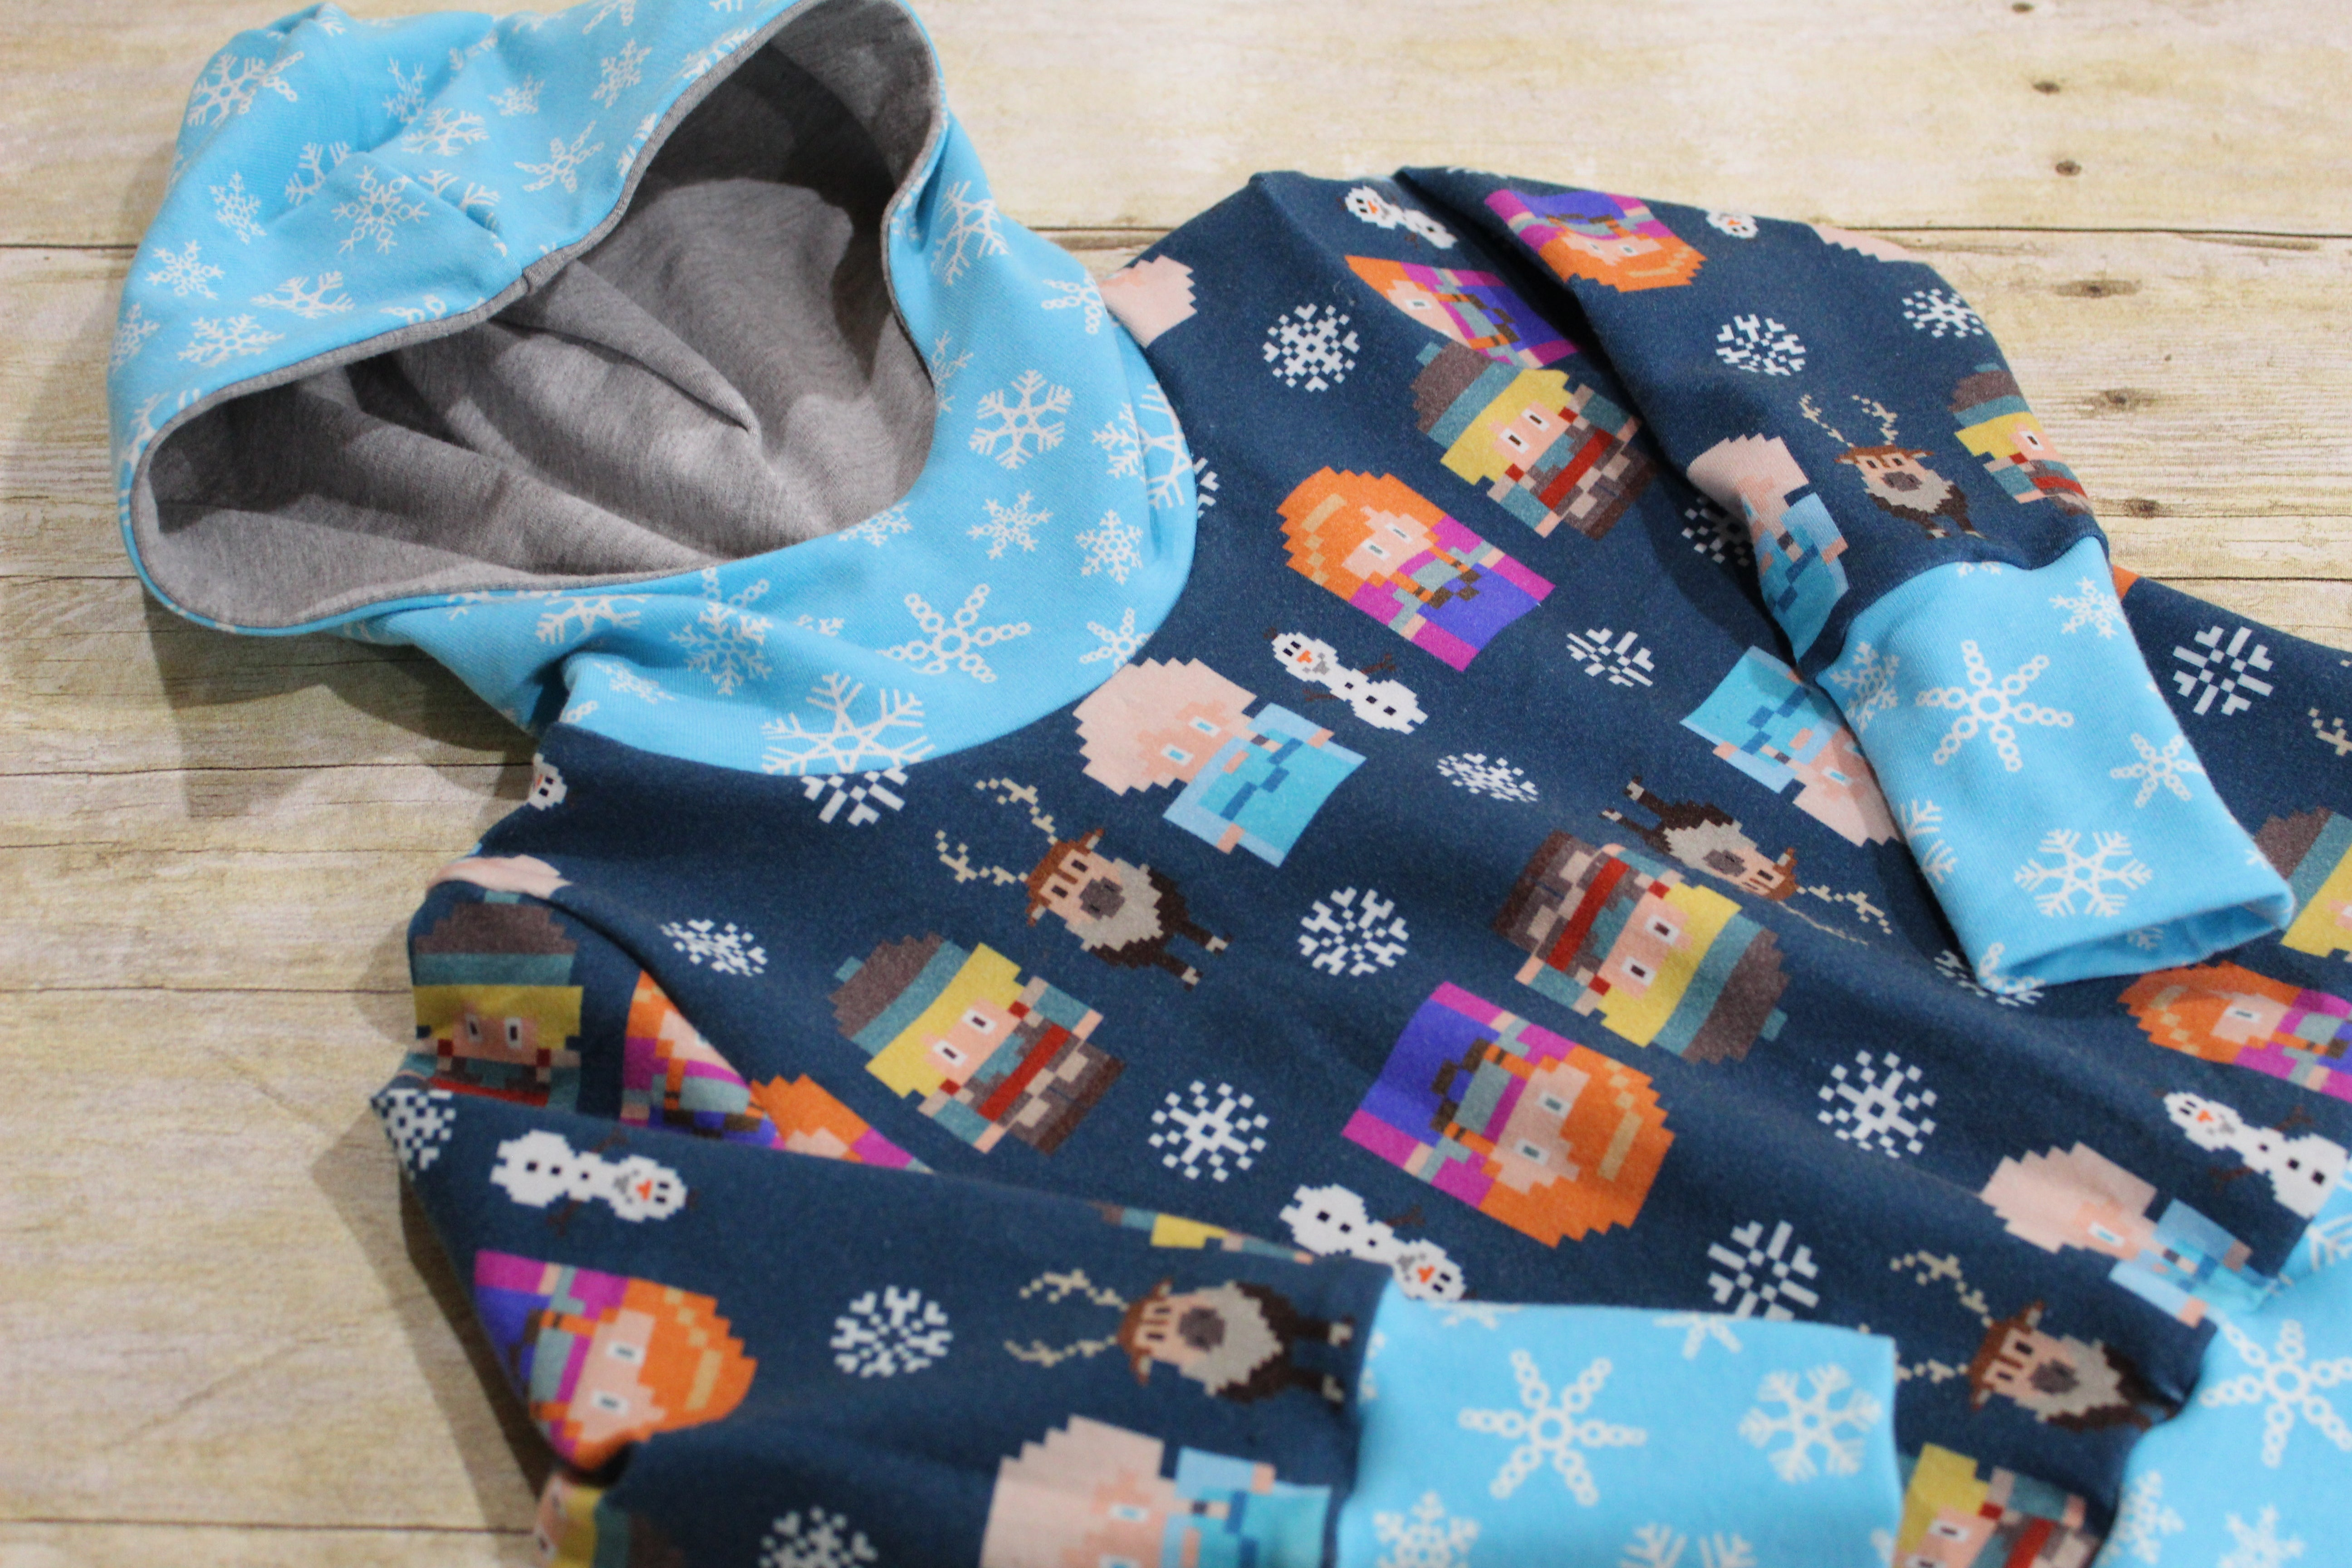 Winter Sweater Grow with Me Hoodie Size S {9 months - 2T}